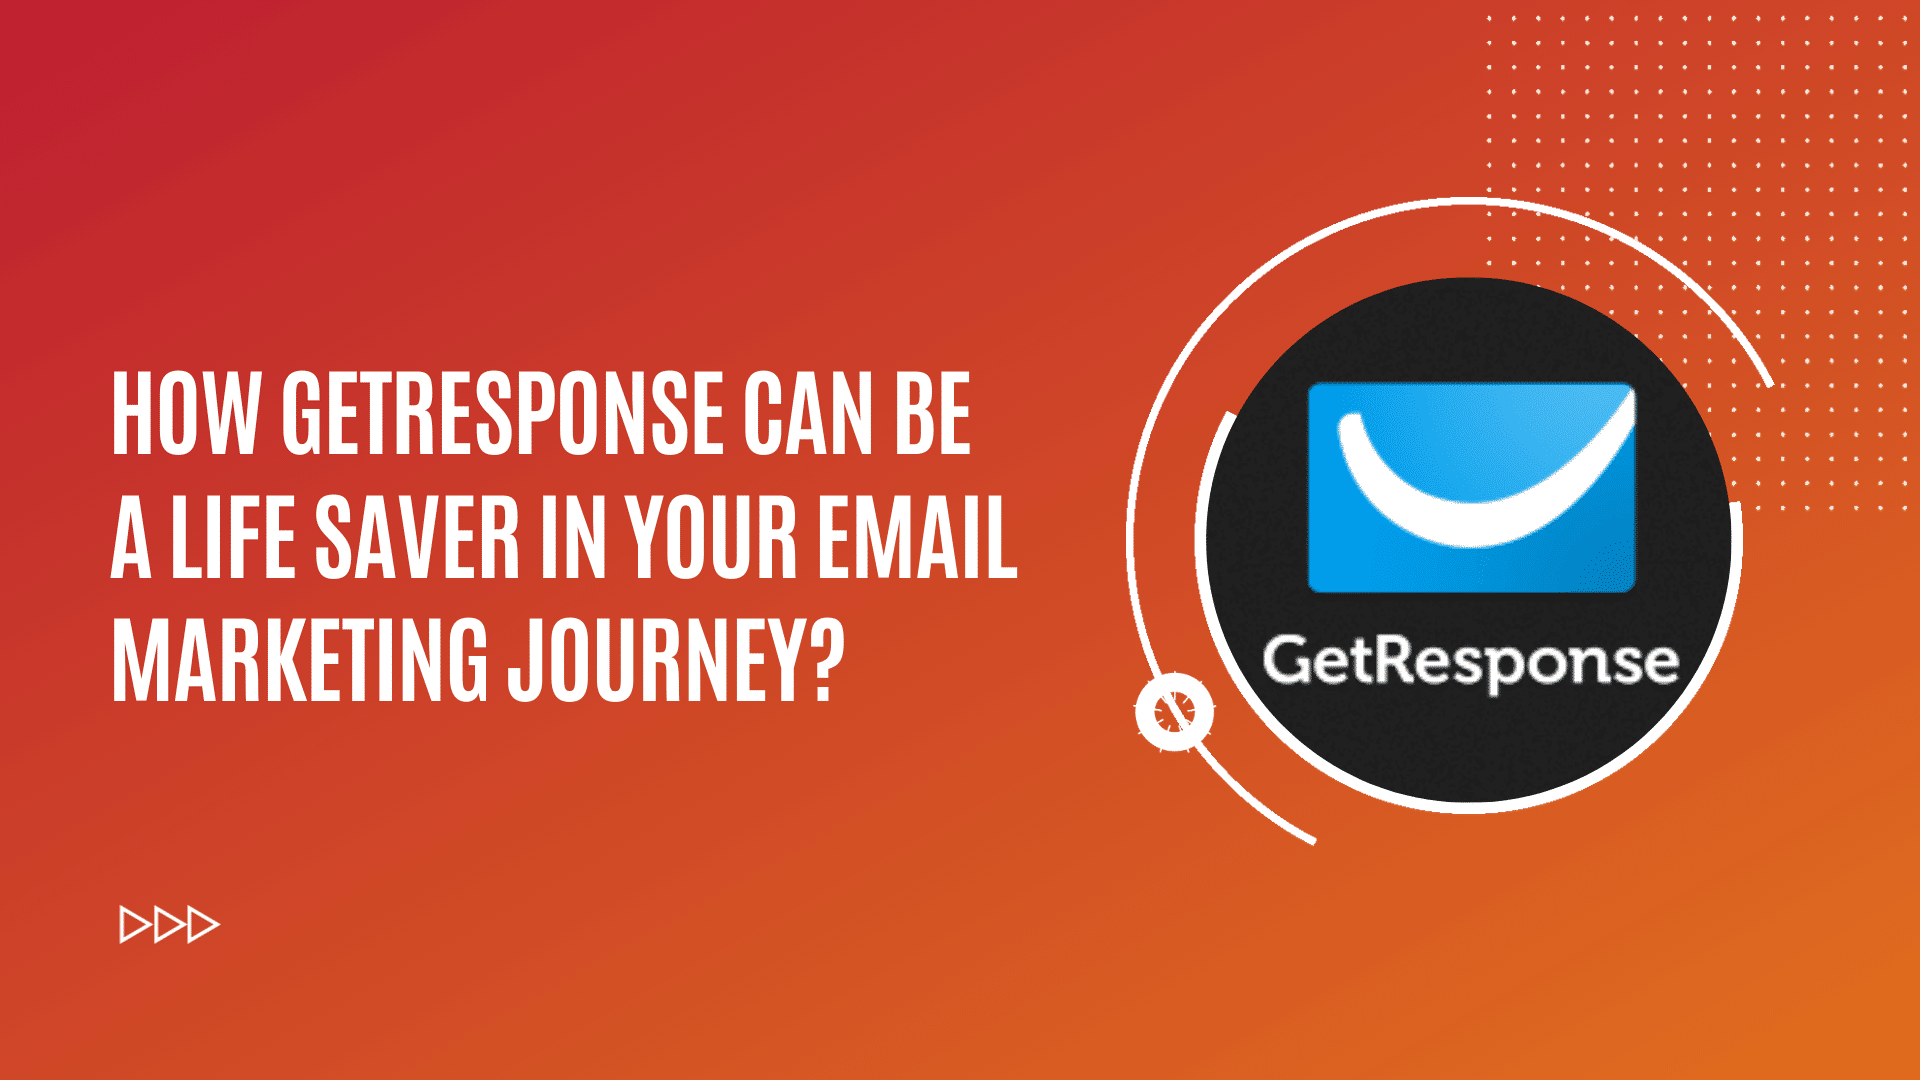 Email marketing journey